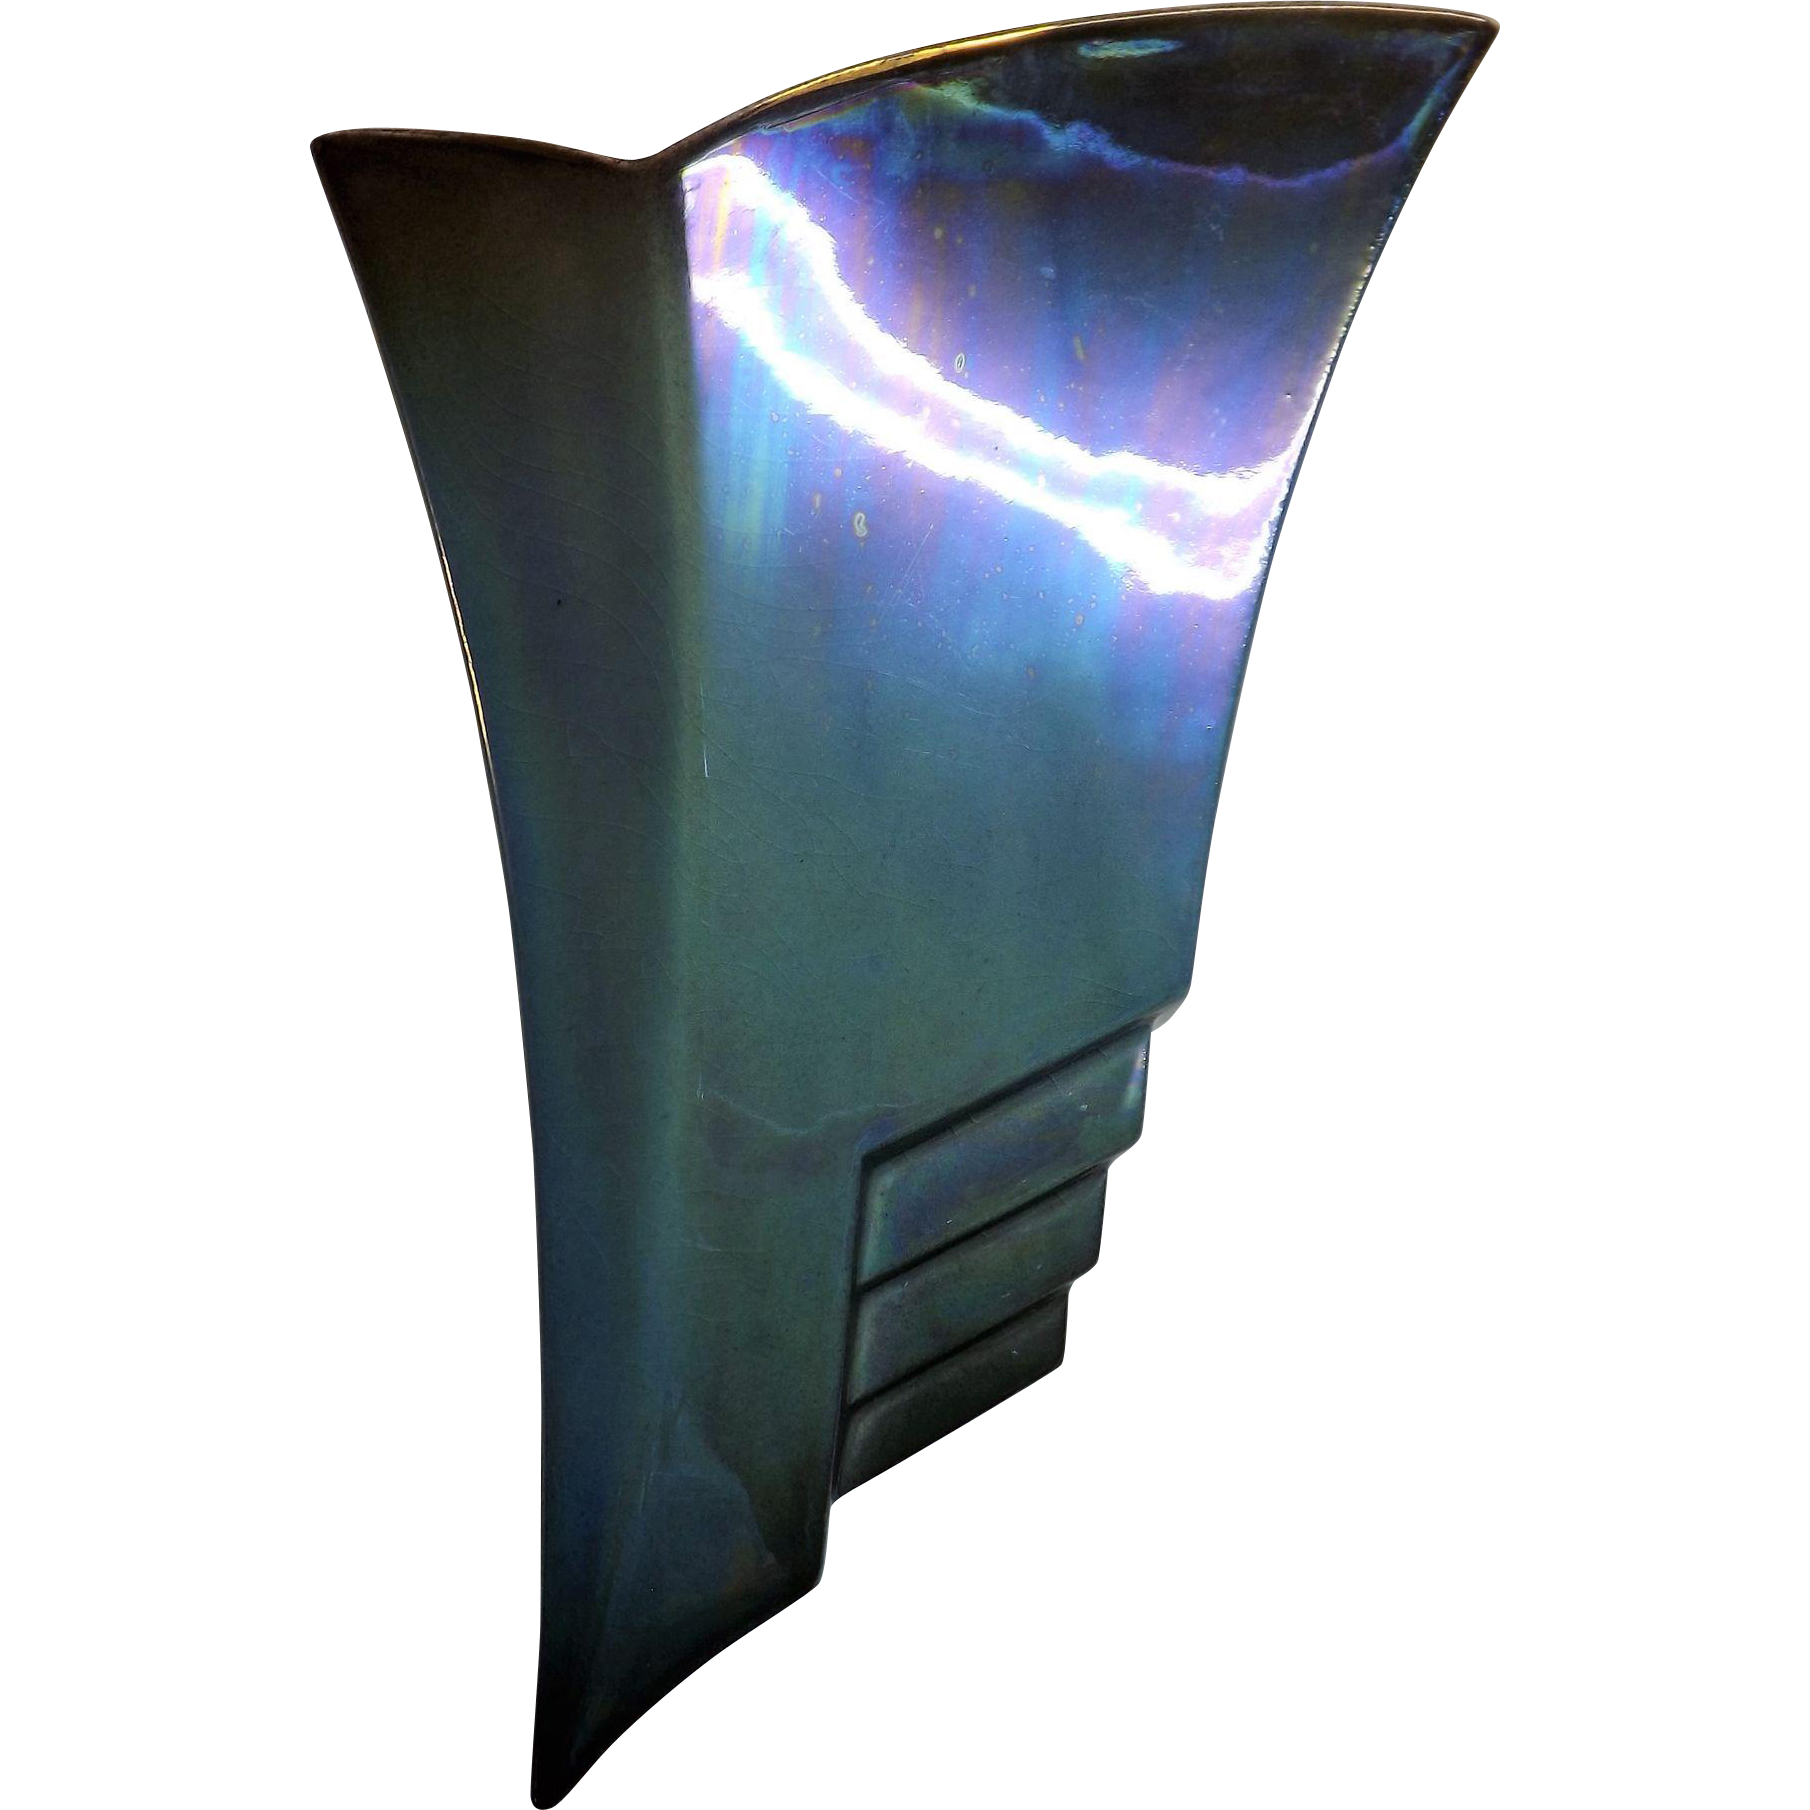 Mid Century Wall Vase By Royal Winton in Stunning Iridescent Blue With Gold Highlighting